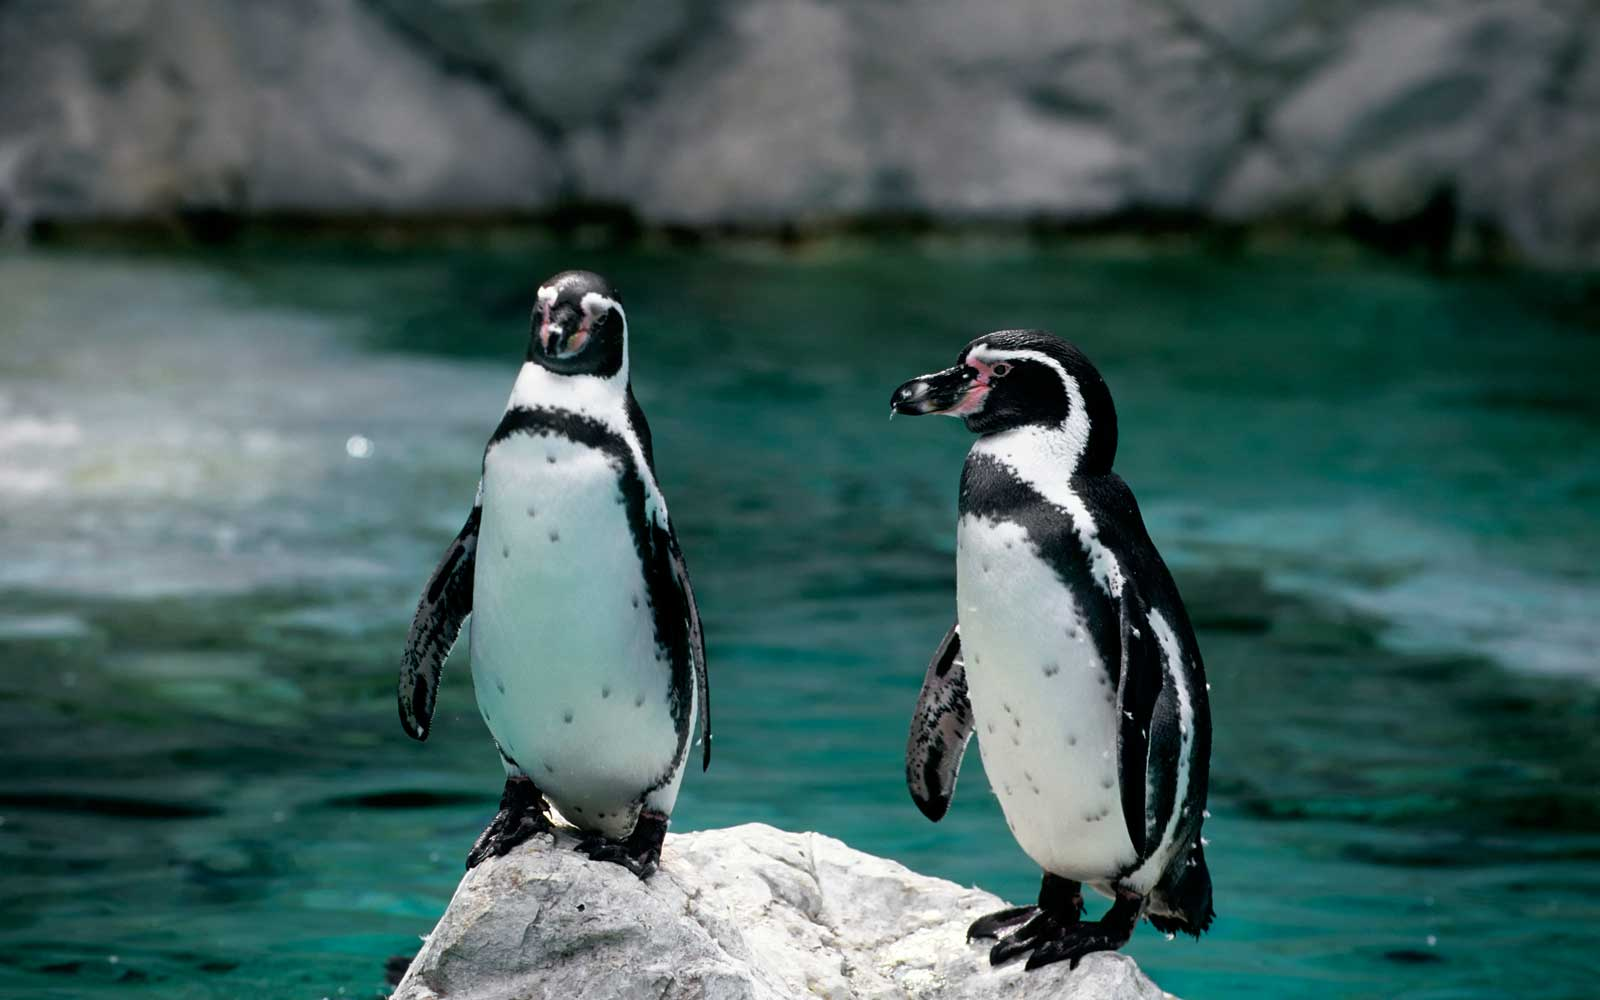 Penguins at a zoo